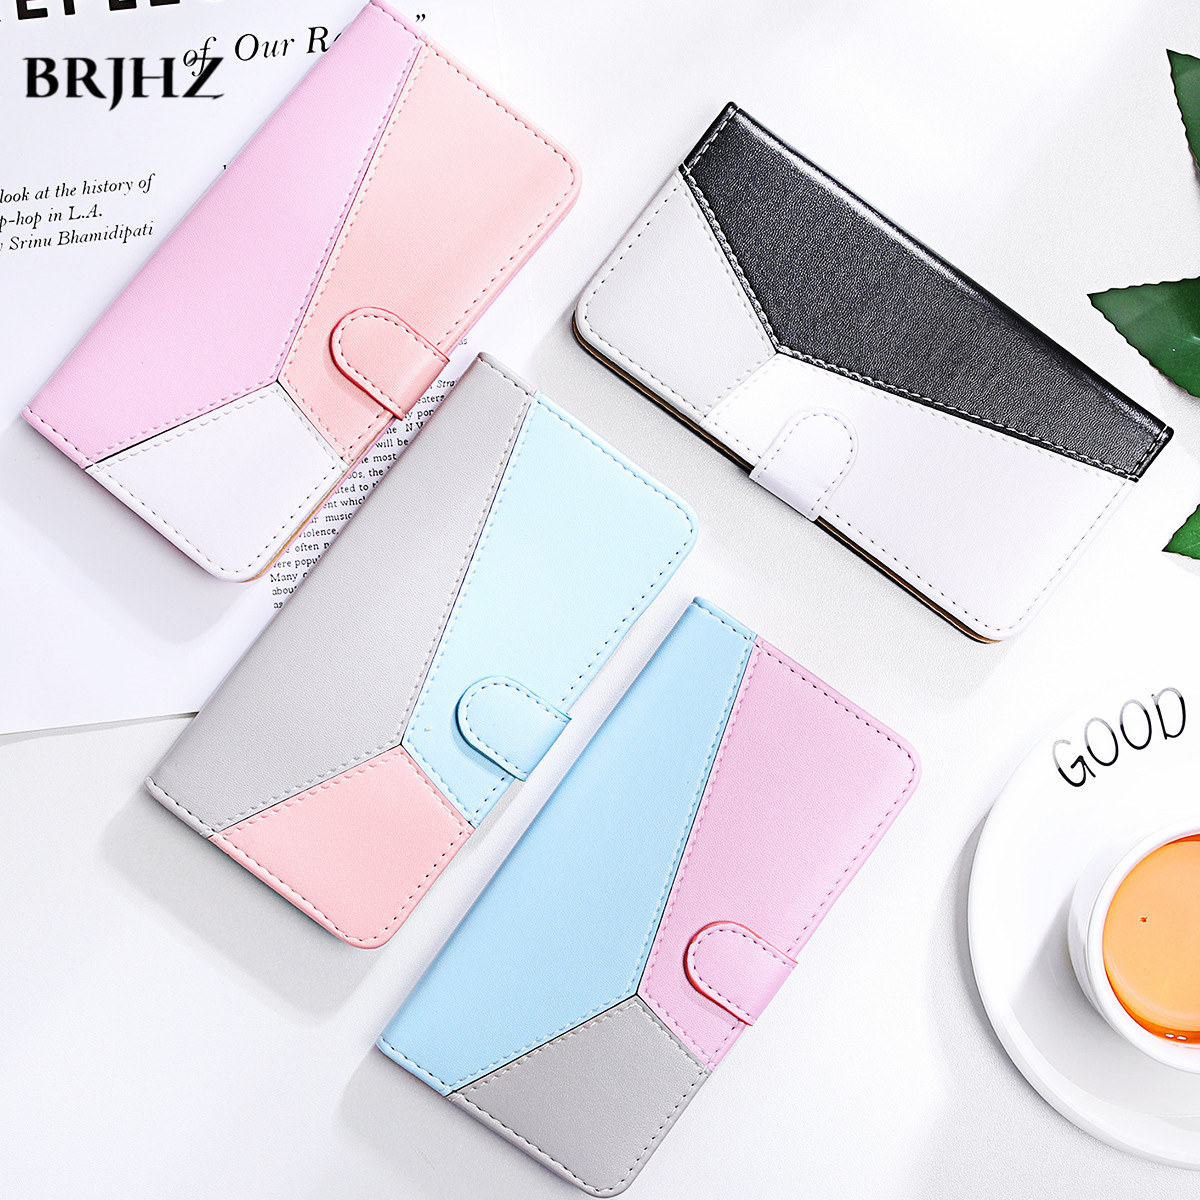 Y5(2019) <font><b>Case</b></font> Leather Flip <font><b>Case</b></font> on for <font><b>Huawei</b></font> Y5 2019 Coque Wallet Magnetic Cover for <font><b>Huawei</b></font> Y5 2017 <font><b>Y</b></font> <font><b>5</b></font> Prime <font><b>2018</b></font> <font><b>Phone</b></font> <font><b>Cases</b></font> image